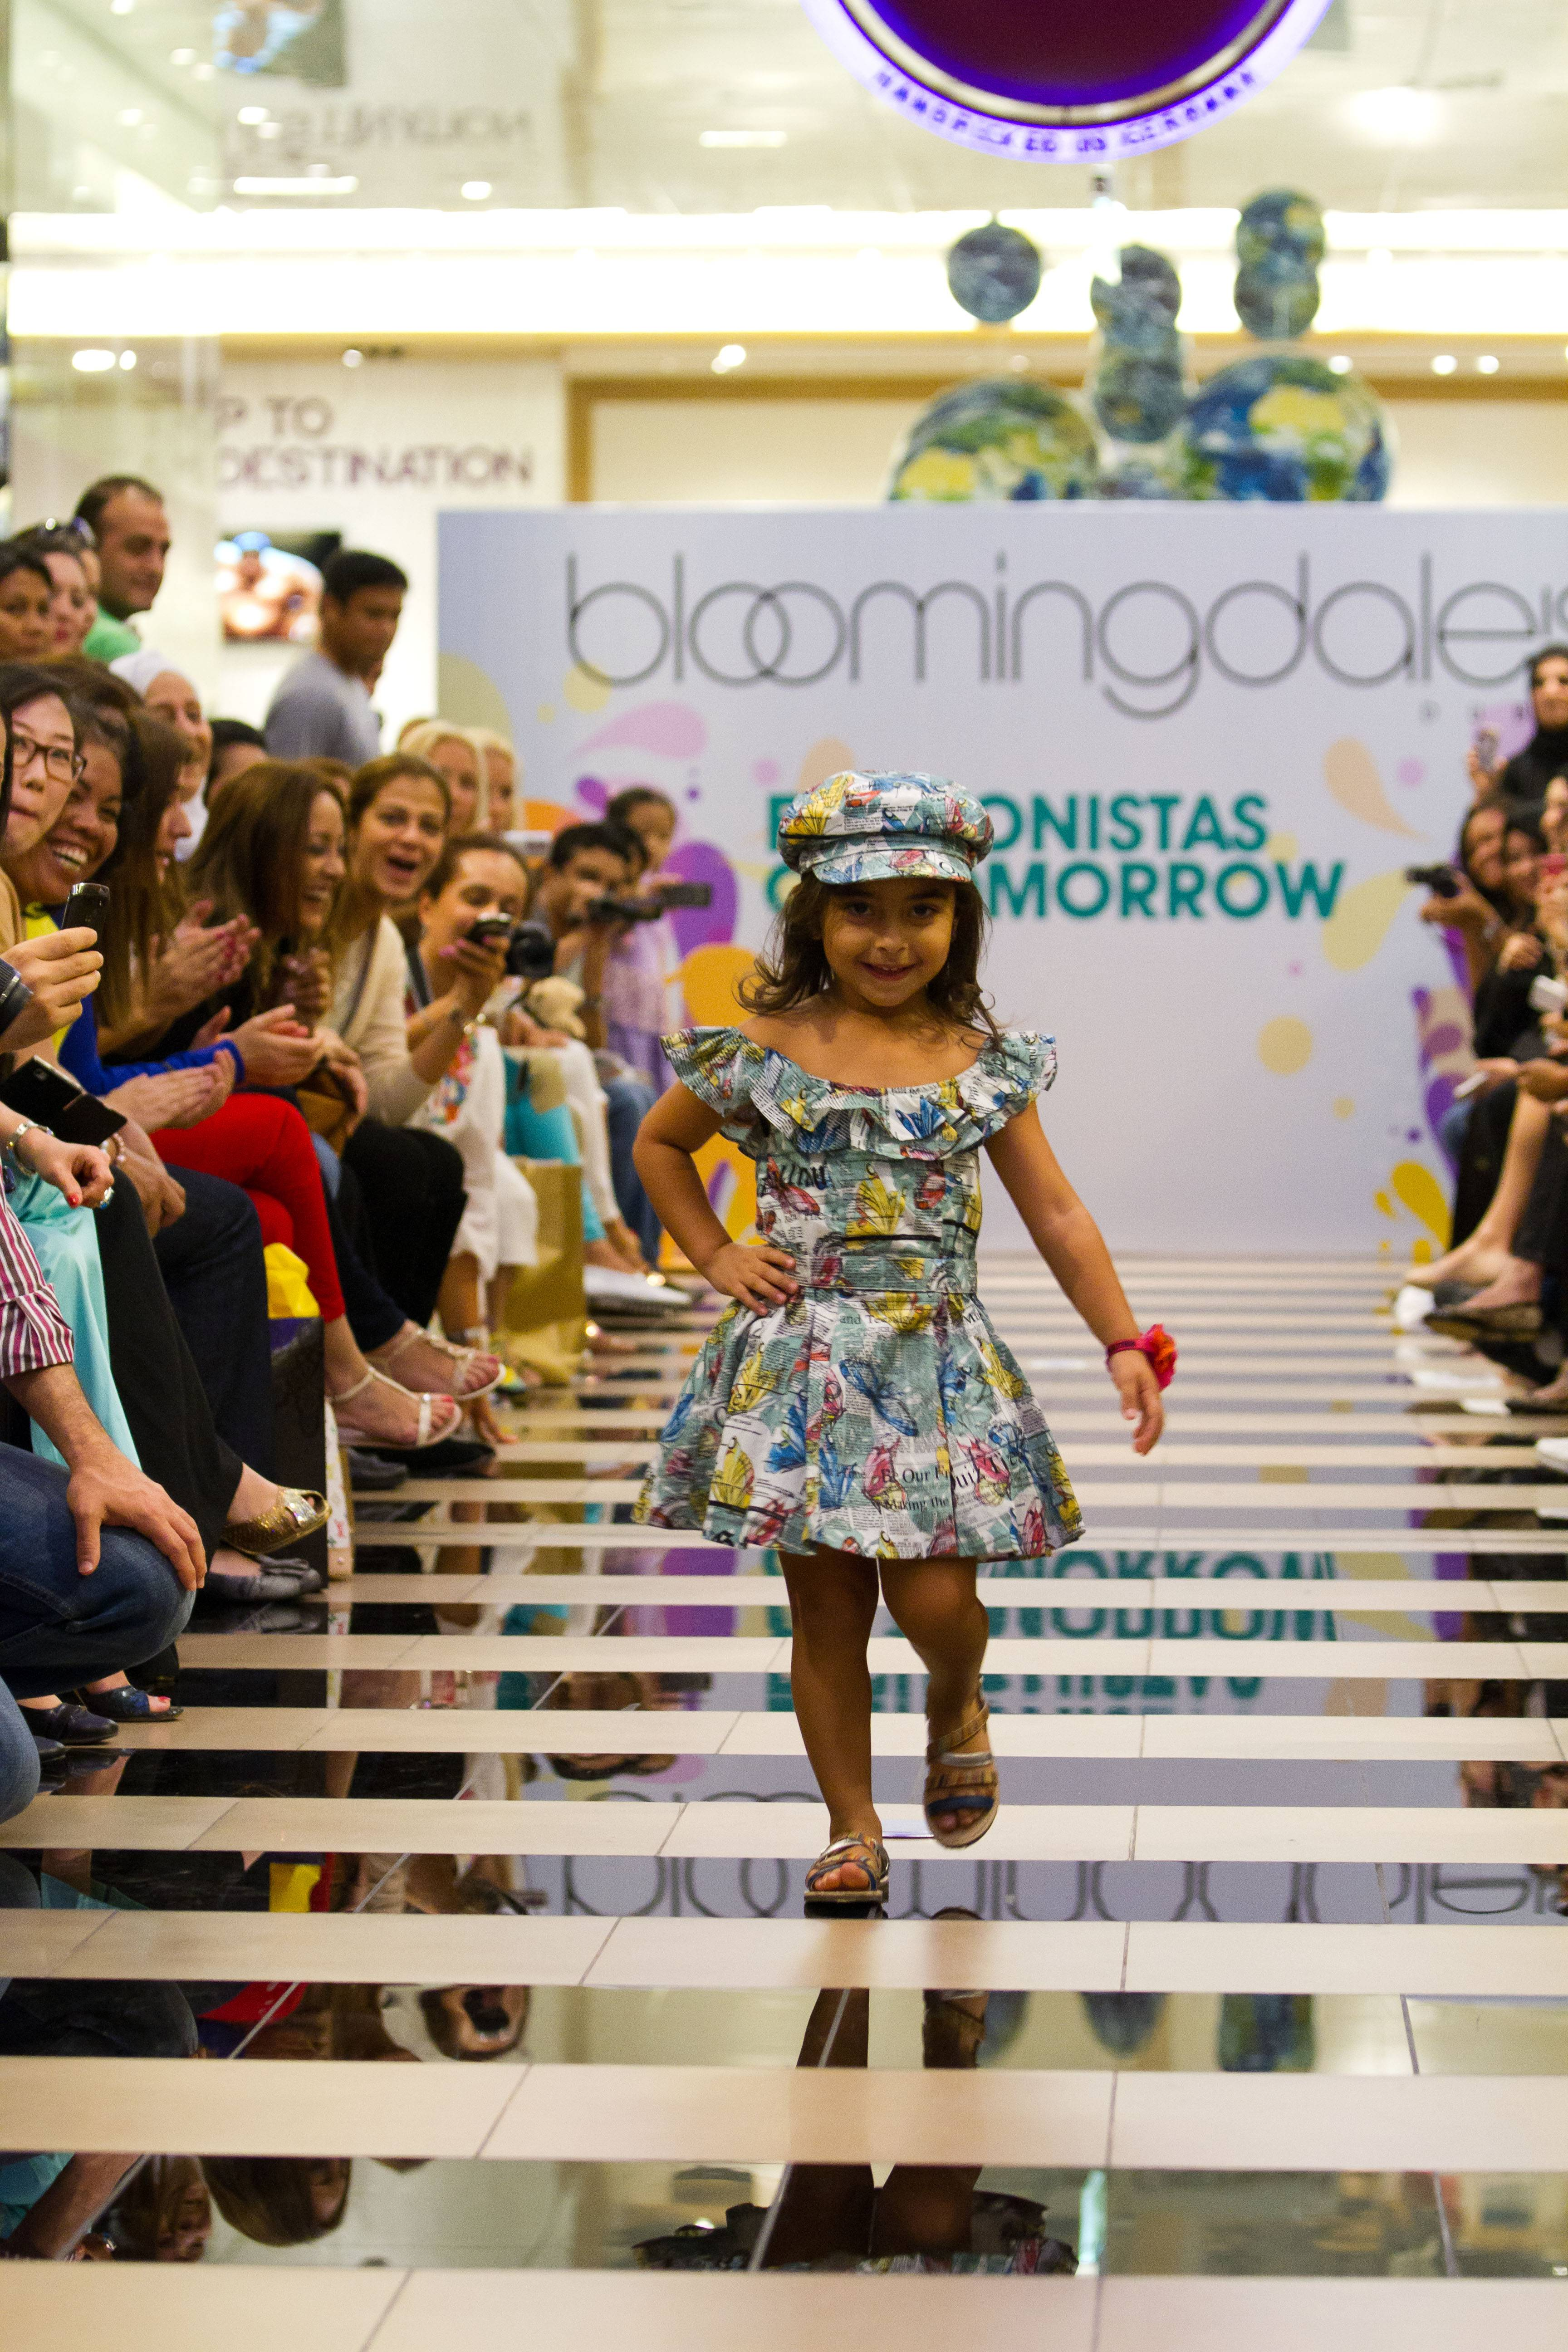 Music For Fashion Show For Kids Dance music echoed from level